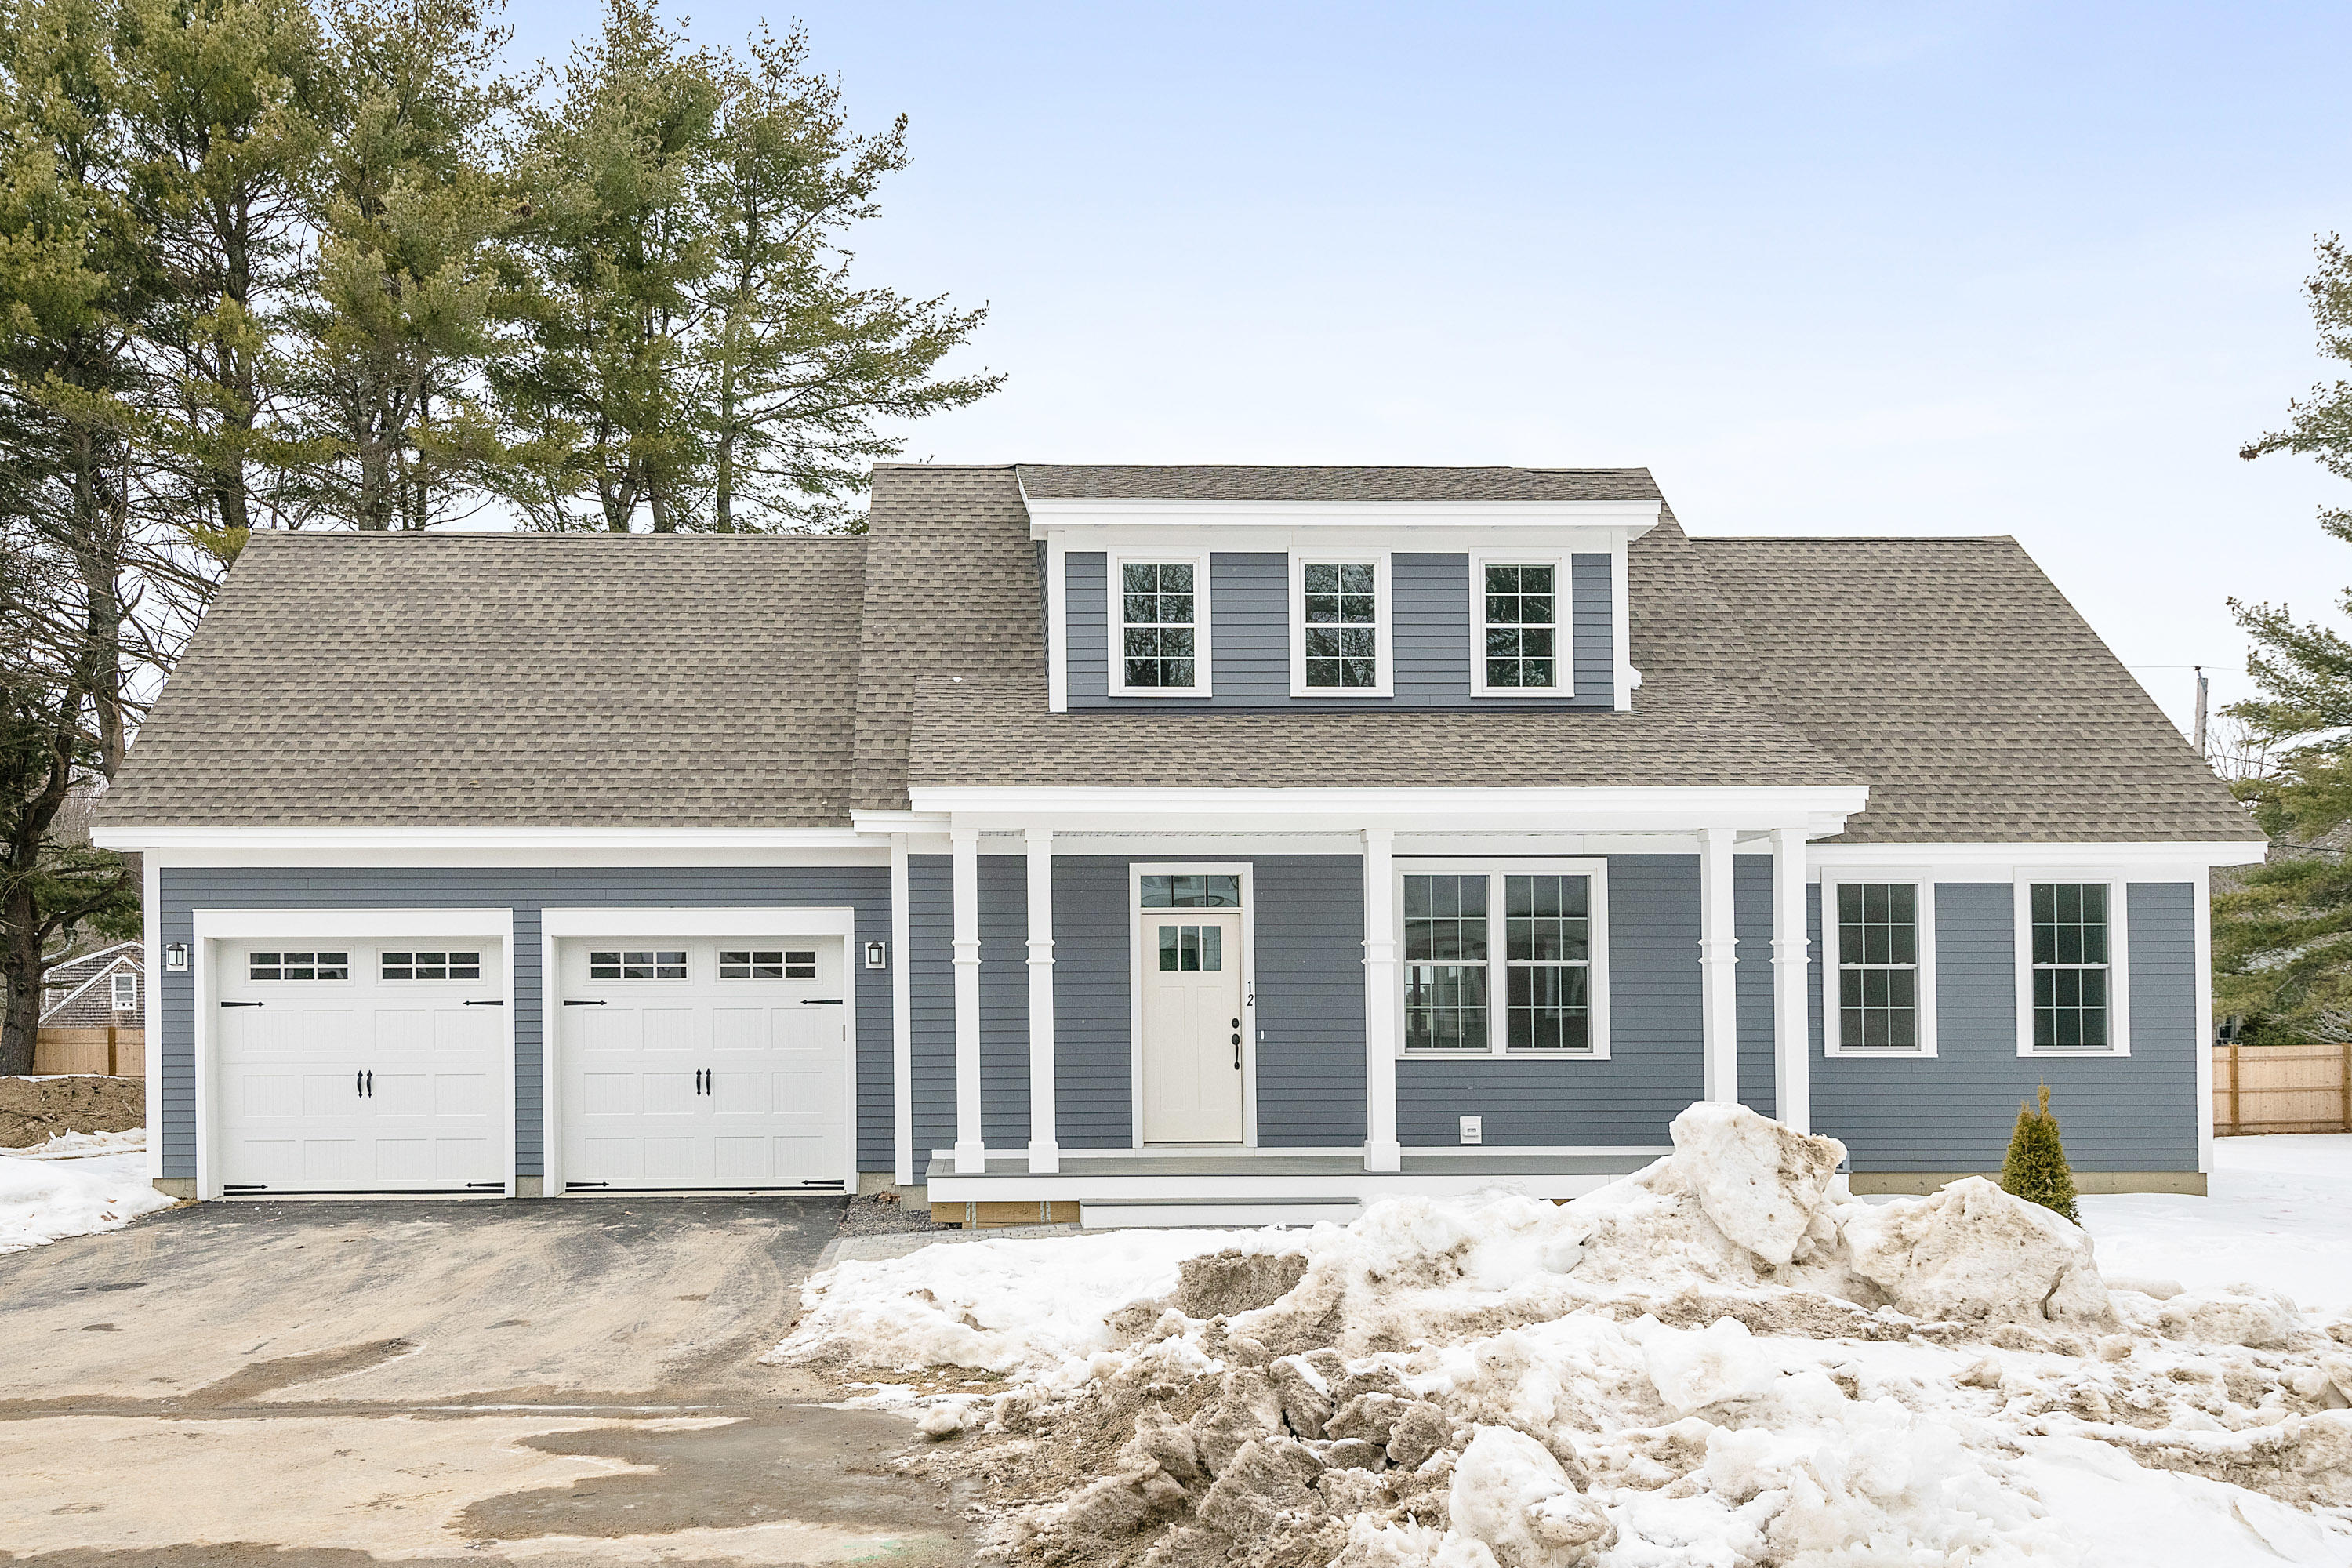 Main image for MLS listing 1485198